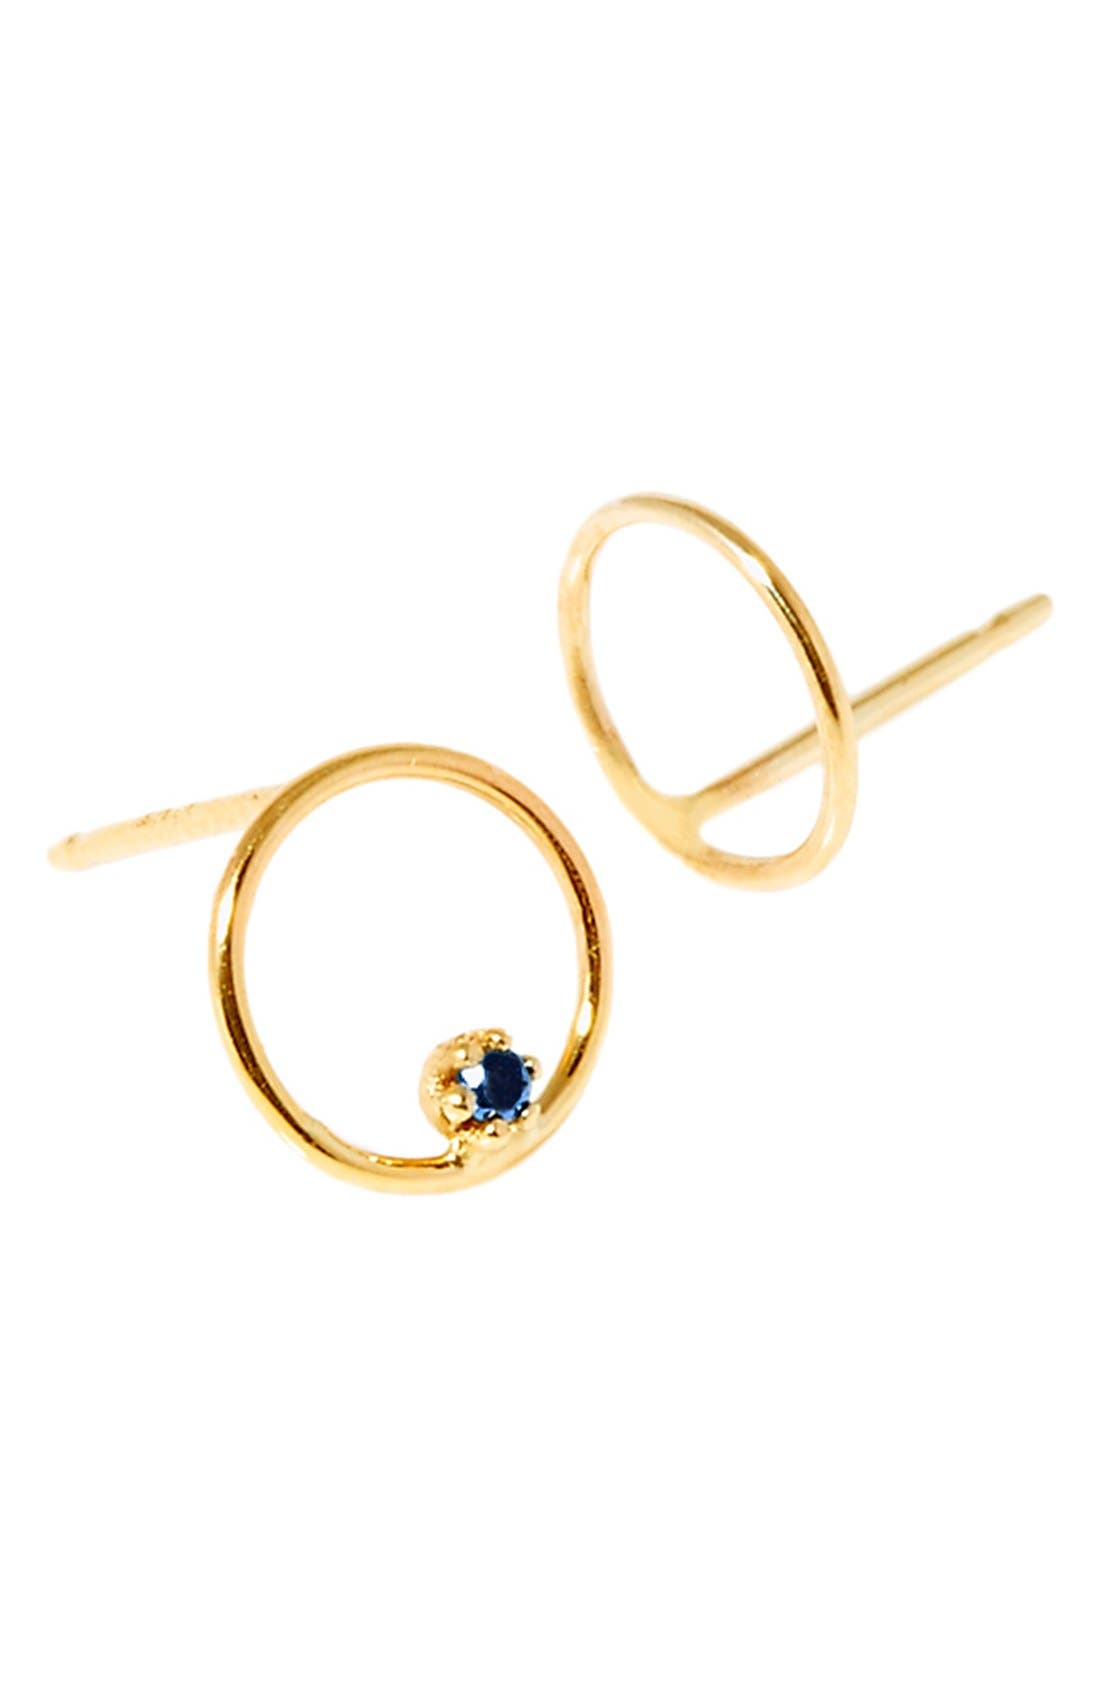 Alternate Image 1 Selected - SARAH & SEBASTIAN 'Stone Bubble' Mismatched Gold & Sapphire Earrings